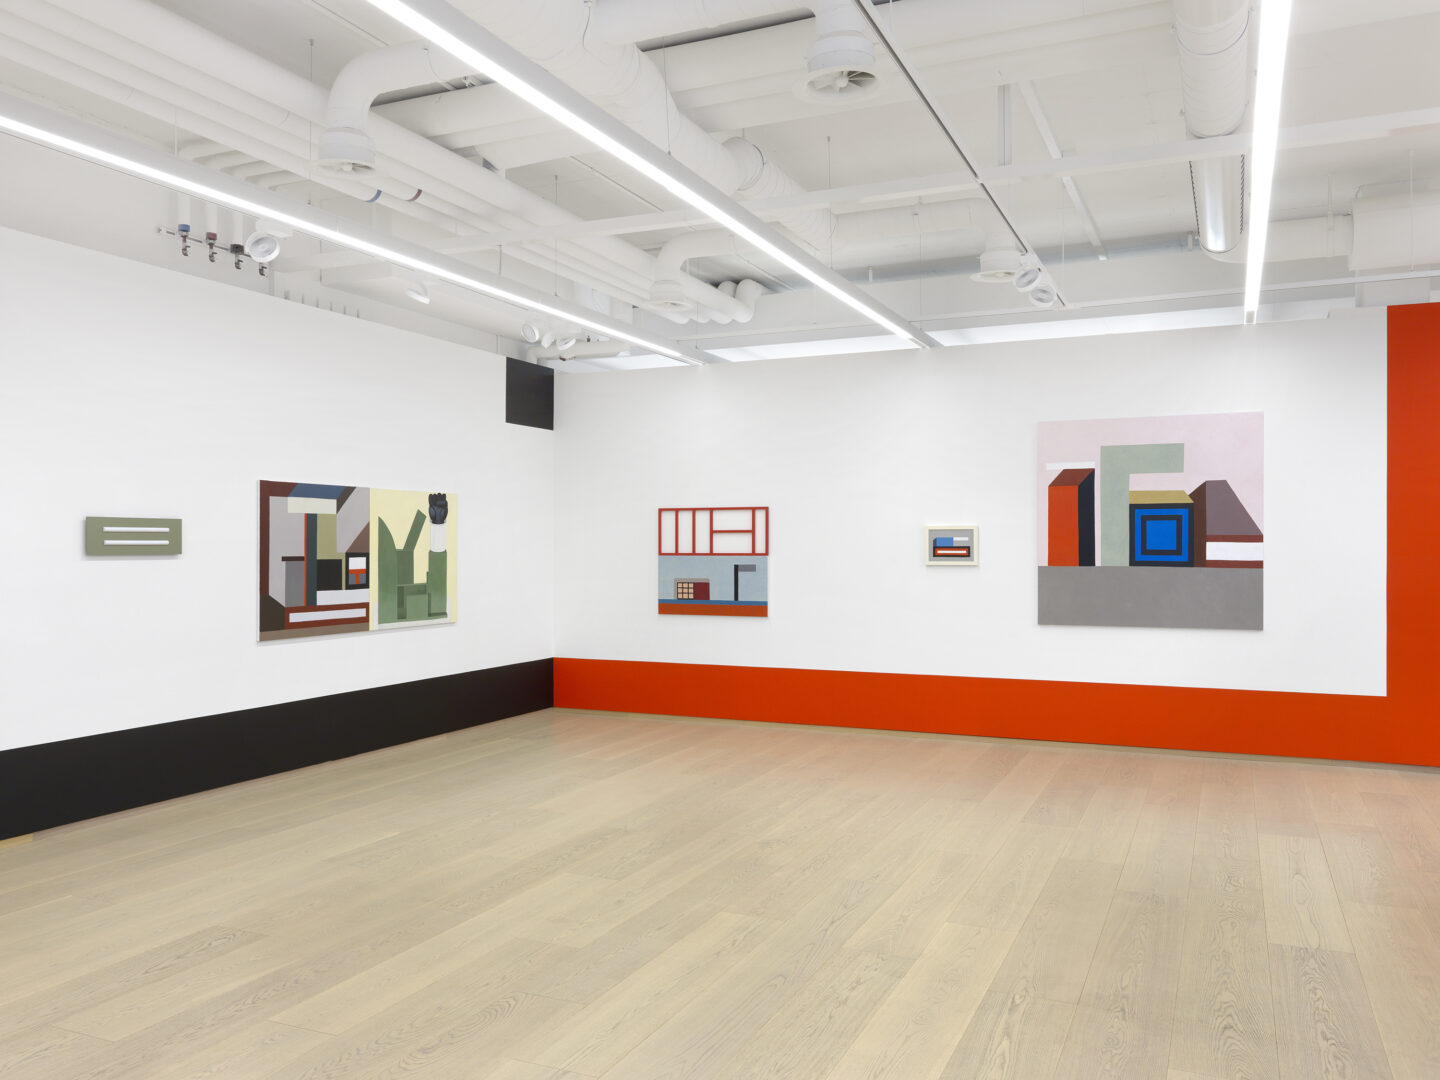 Exhibition View Nathalie Du Pasquier Soloshow «the strange order of things 2» at Pace Gallery, Geneva, 2020 / Photo: Annik Wetter / Courtesy: the artist and Pace Gallery